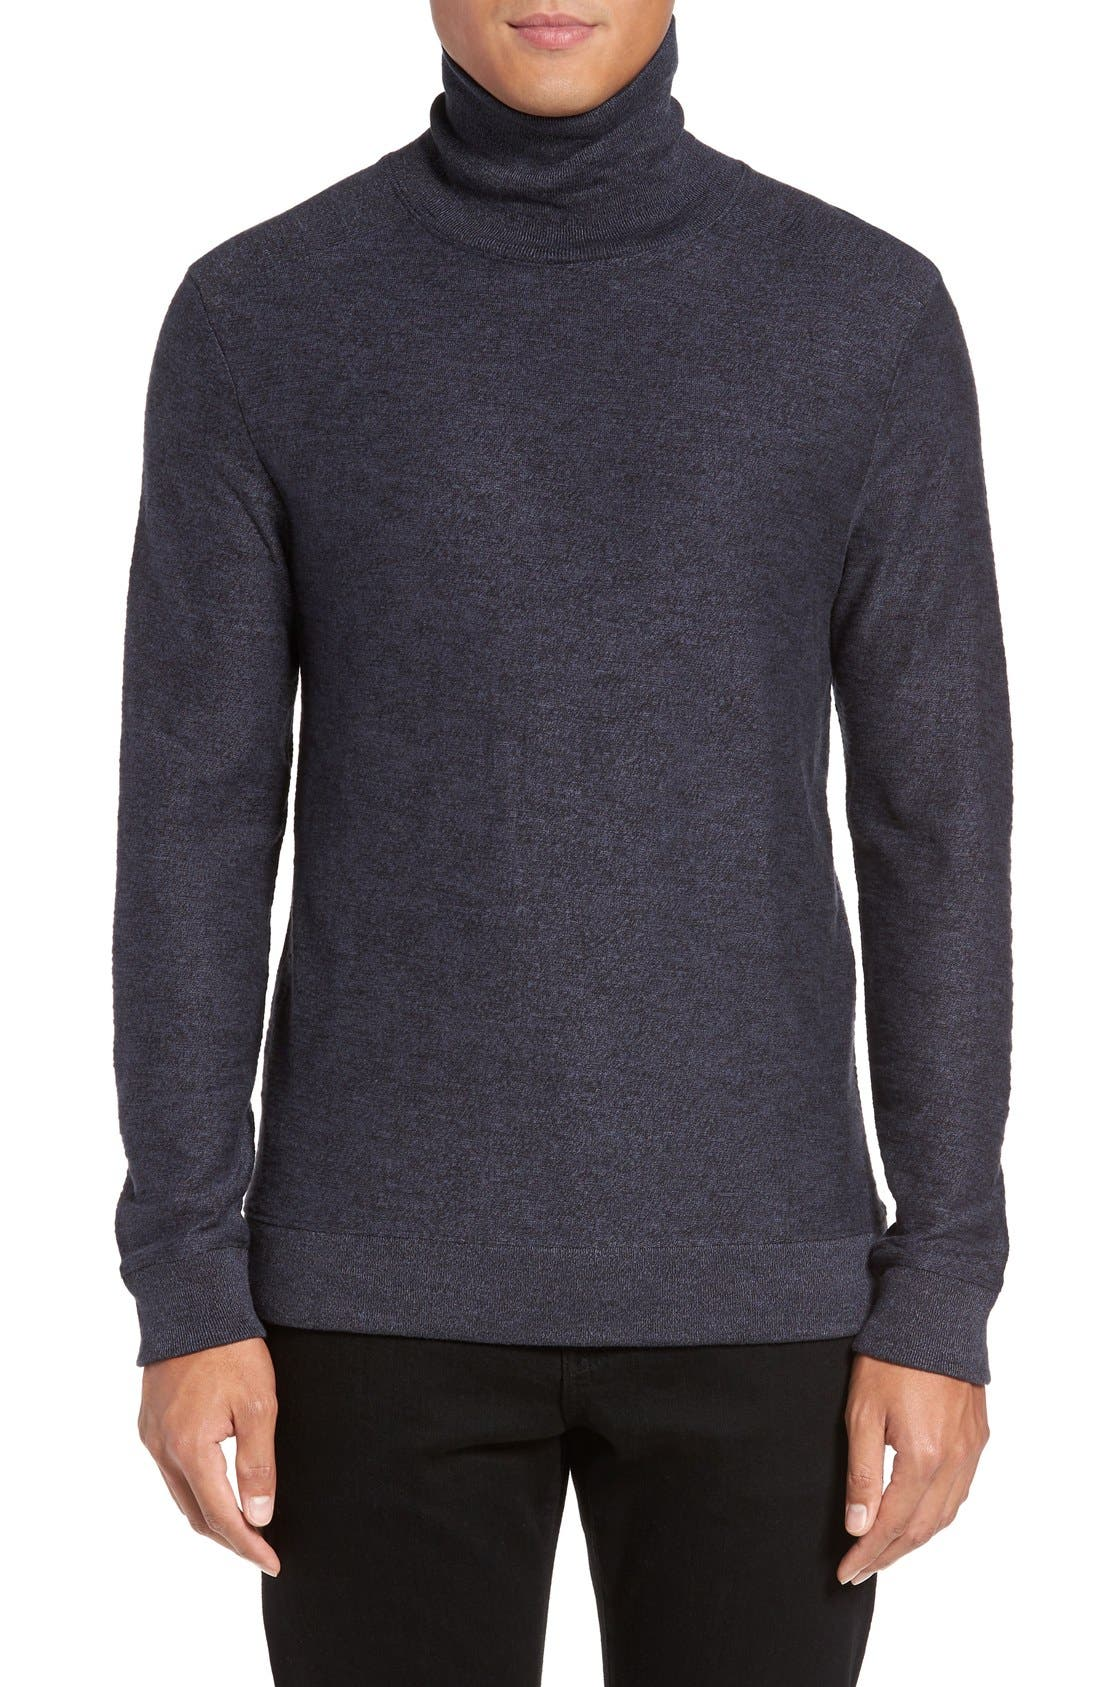 Alternate Image 1 Selected - Vince Camuto Turtleneck Sweater